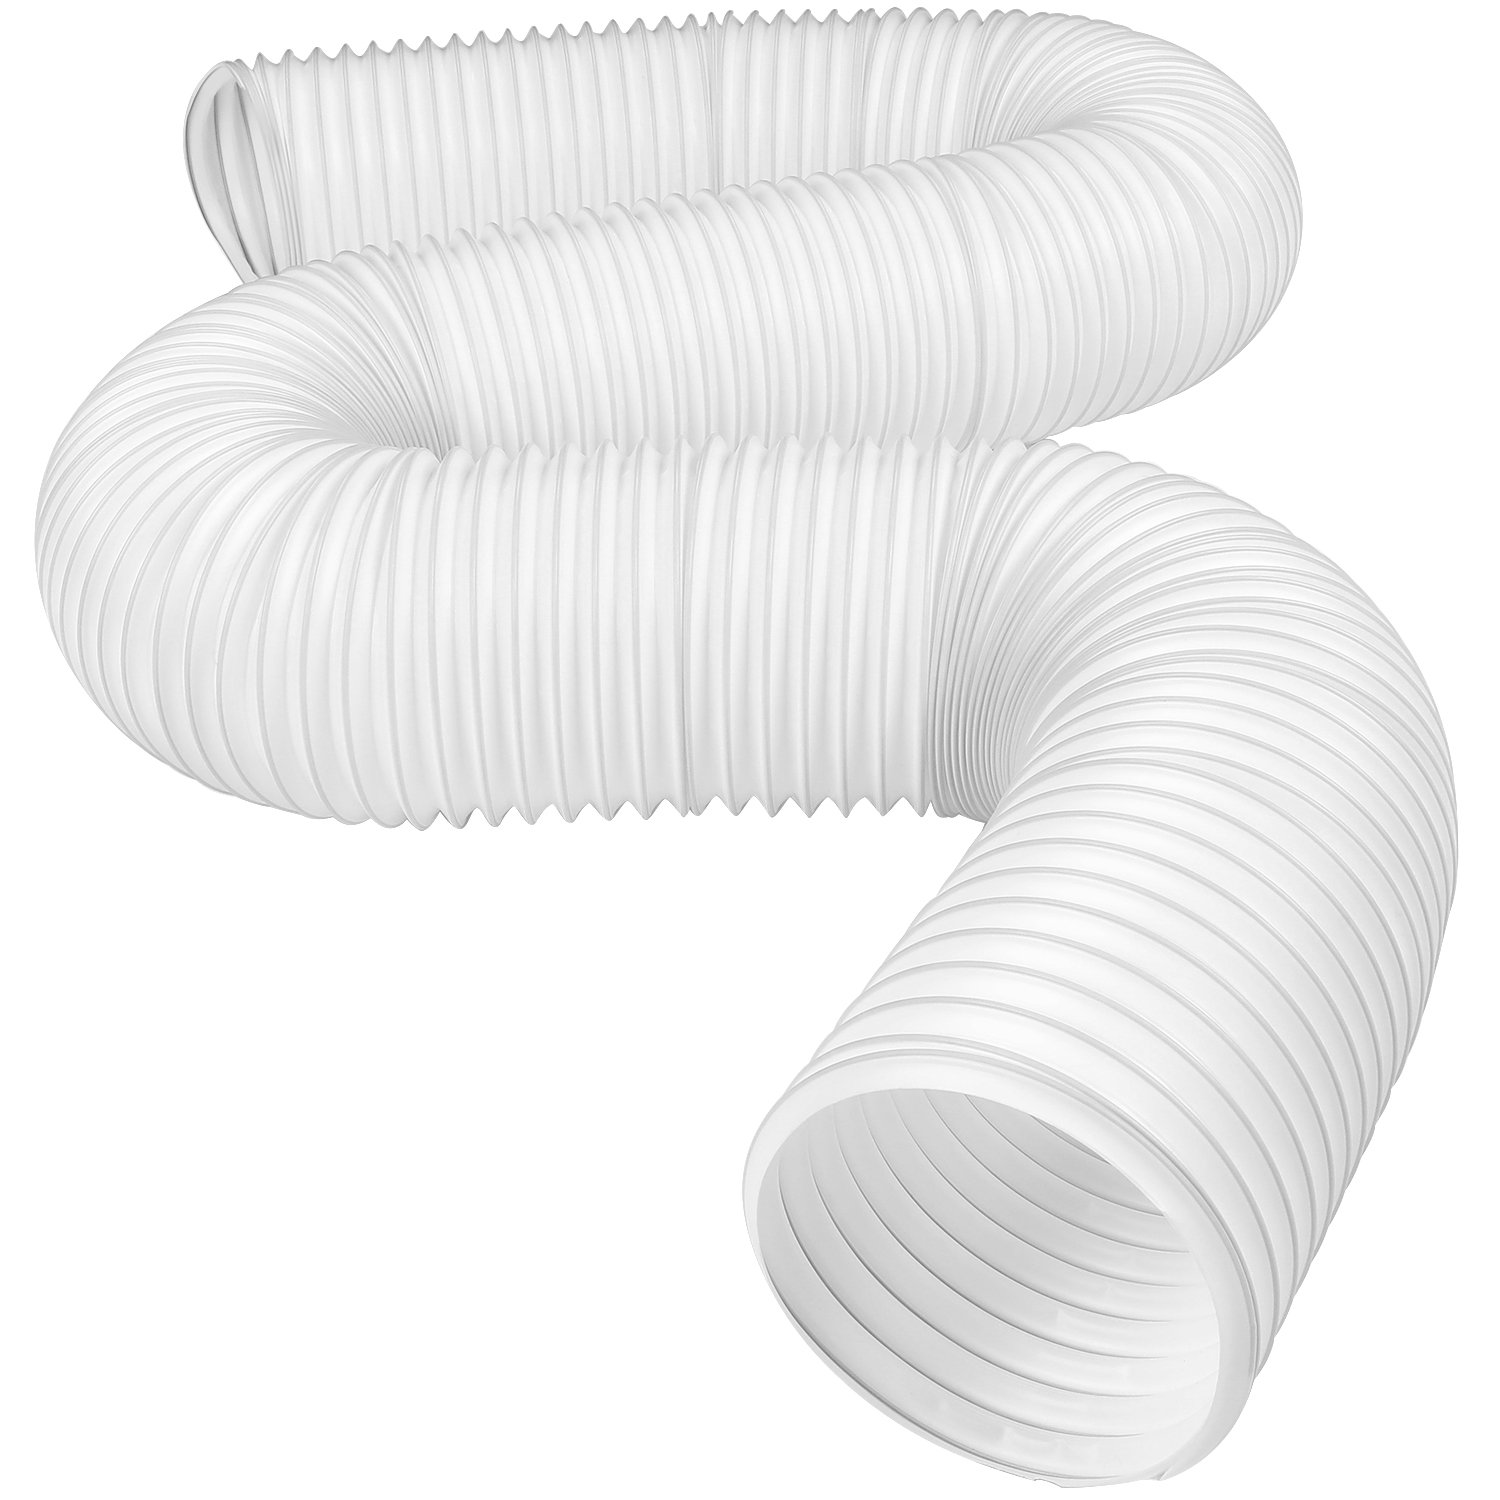 Hotop Portable Air Conditioner Exhaust Hose 5 Inch Diameter Counterclockwise (59 Inch Length)